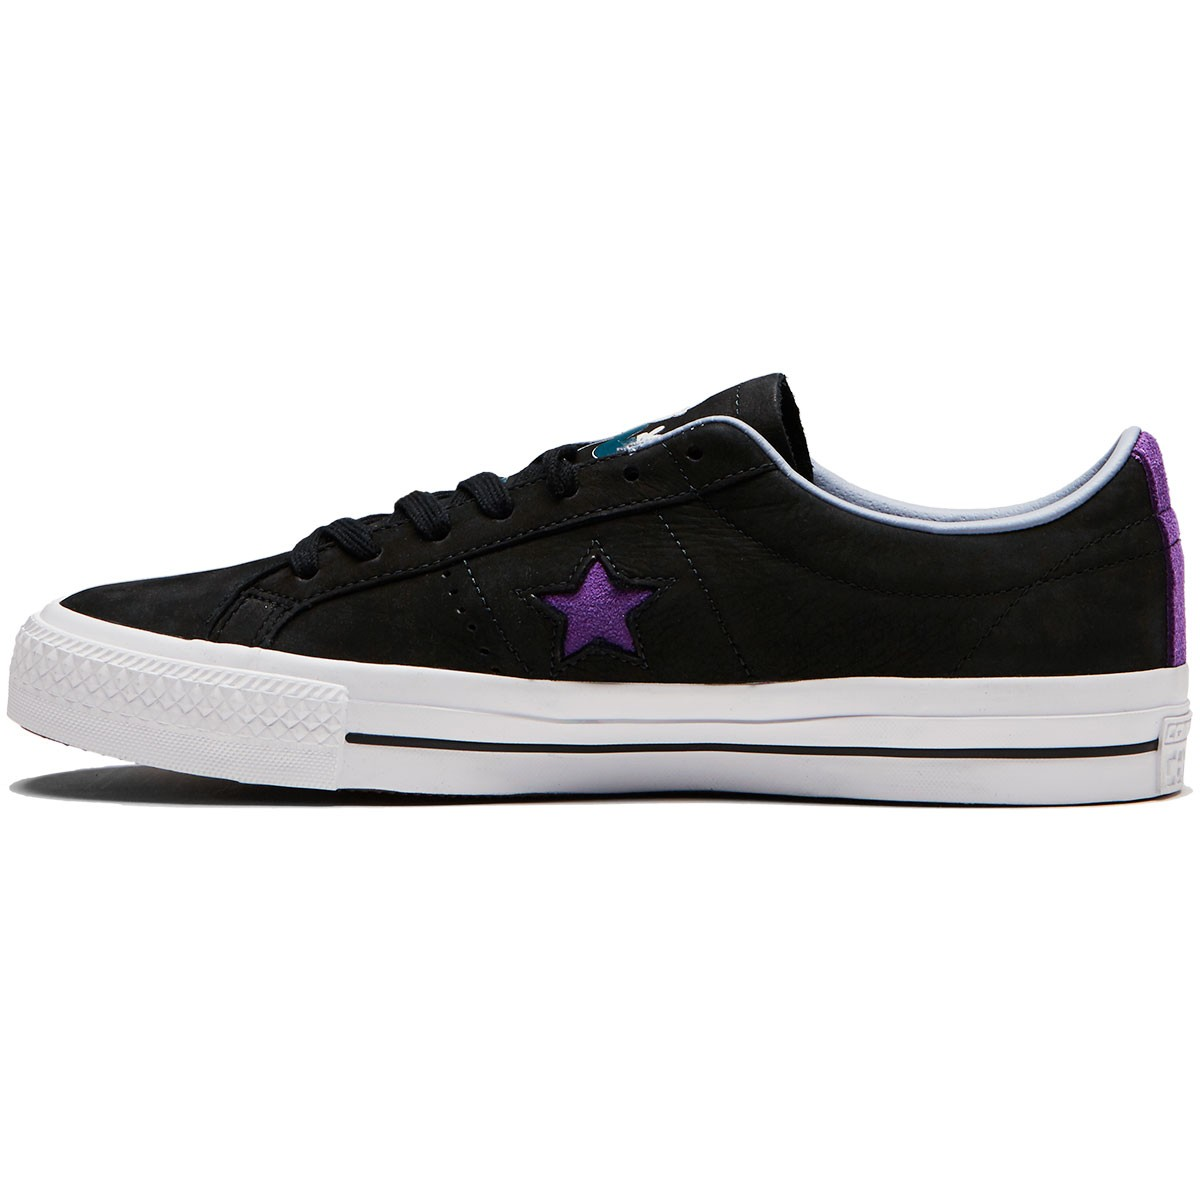 Converse X Dinosaur Jr One Star Pro Ox Shoes - Black Allium Purple White e0bffdfcd